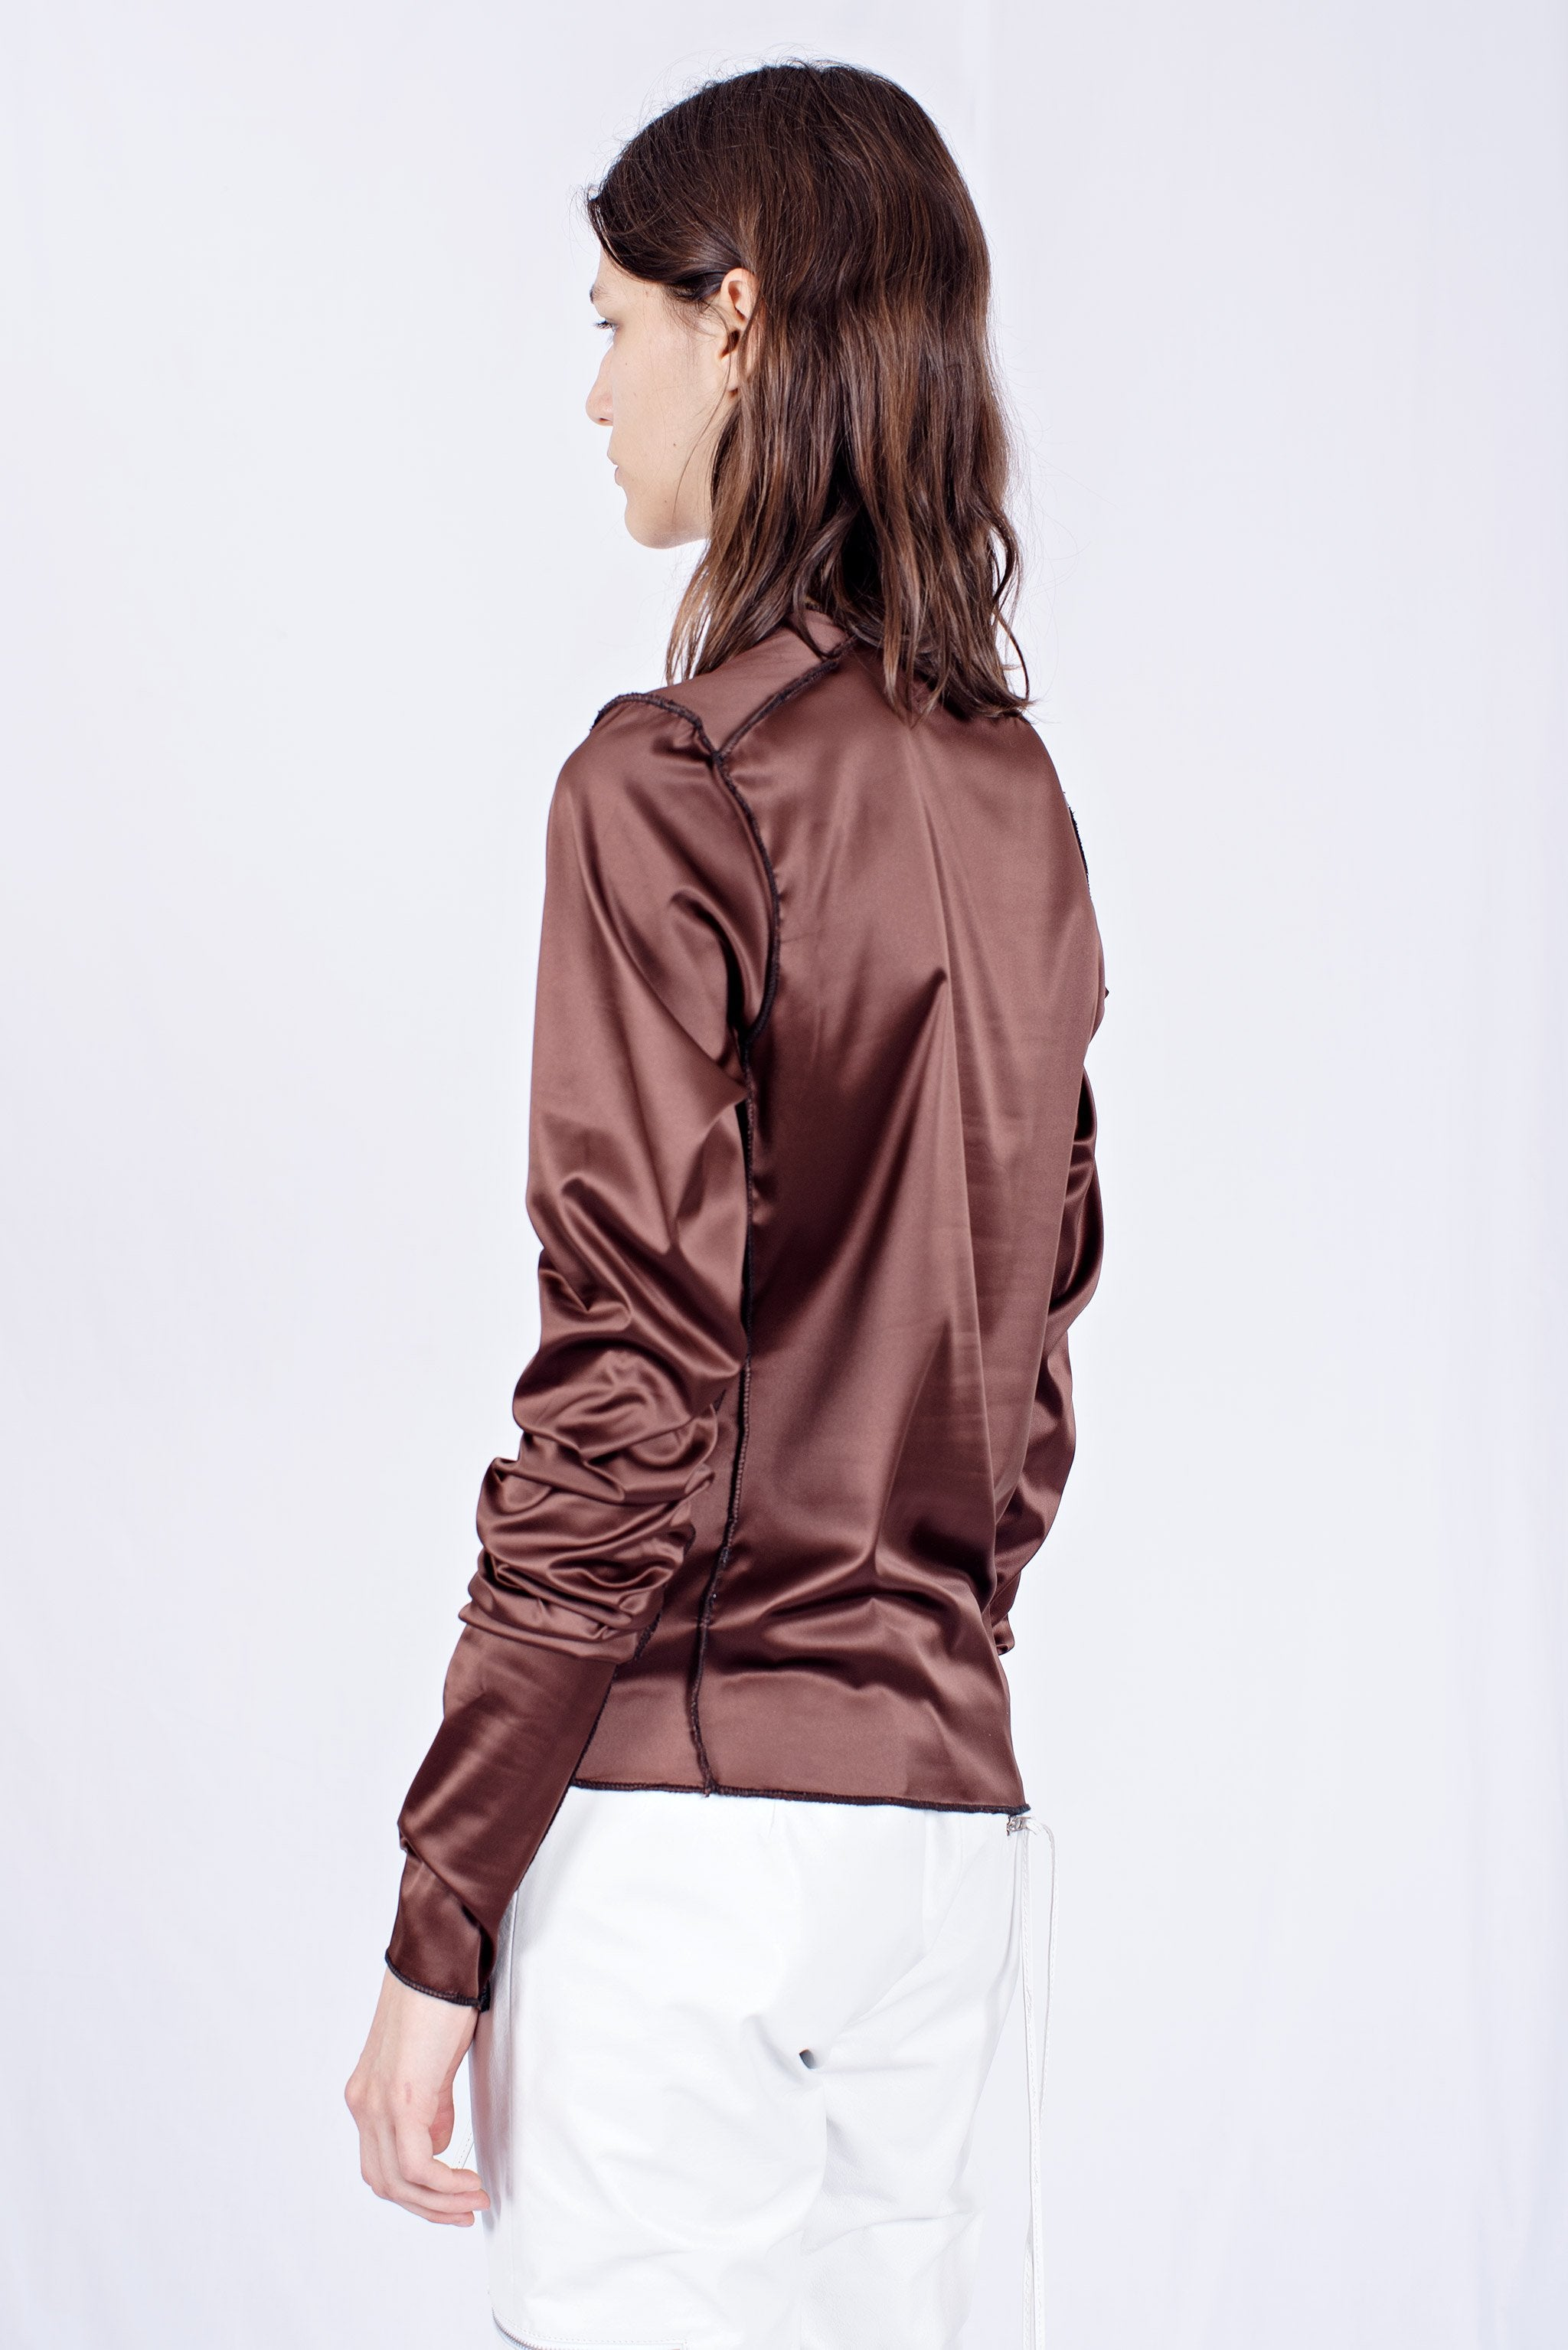 REMERA HOT MARRON